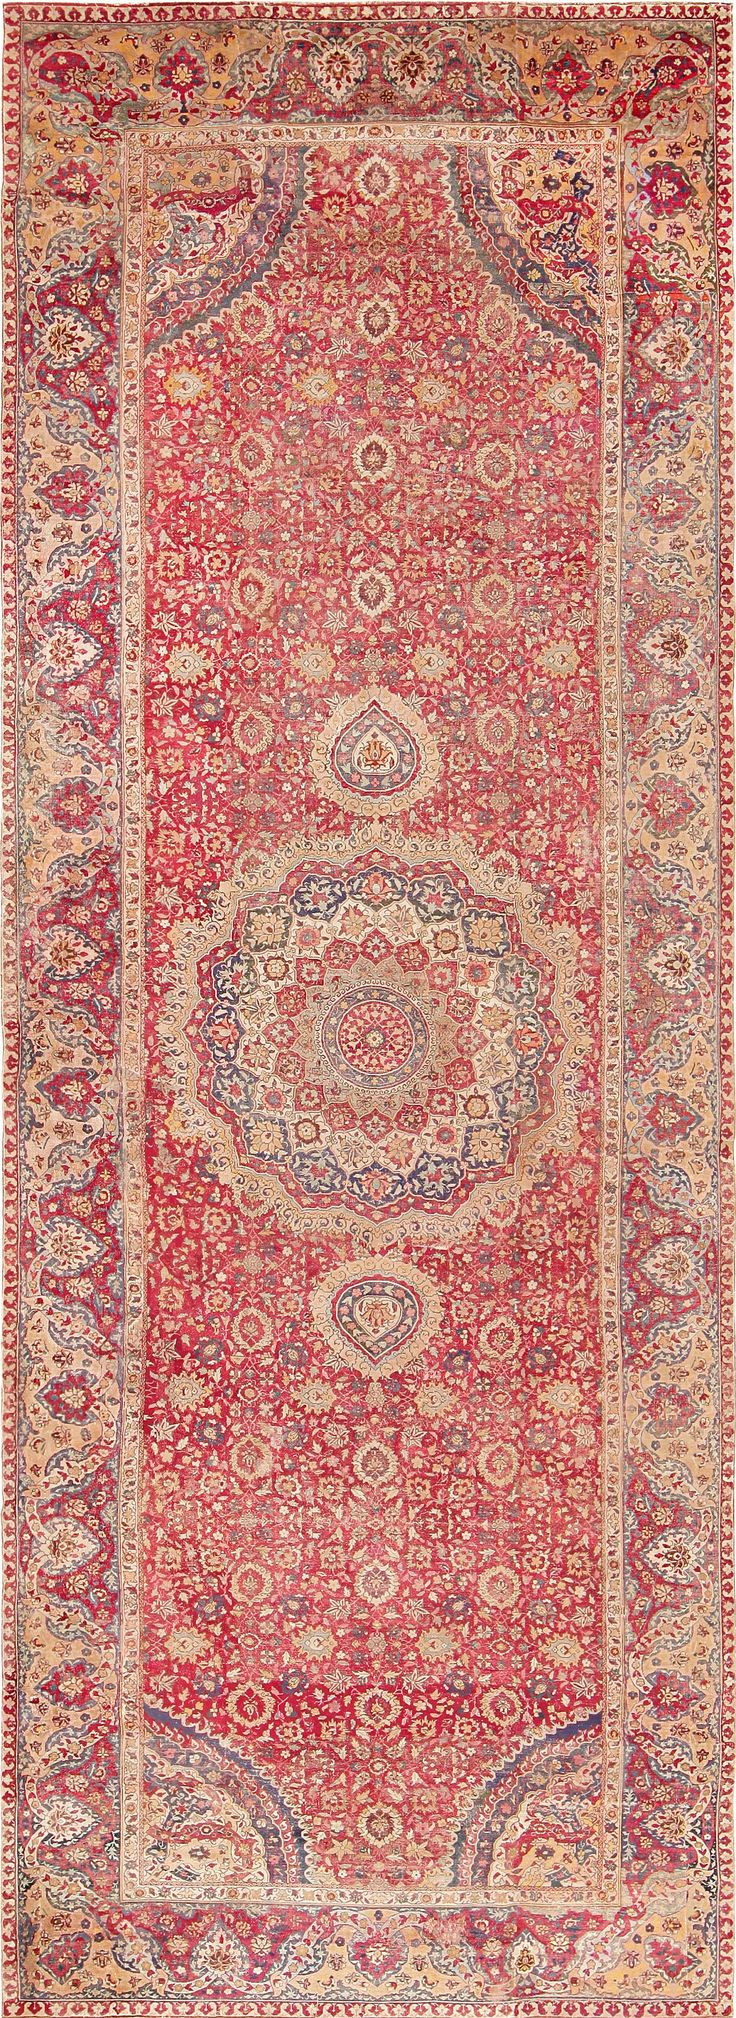 17th Century Indian Mughal Rug, Nazmiyal Collection